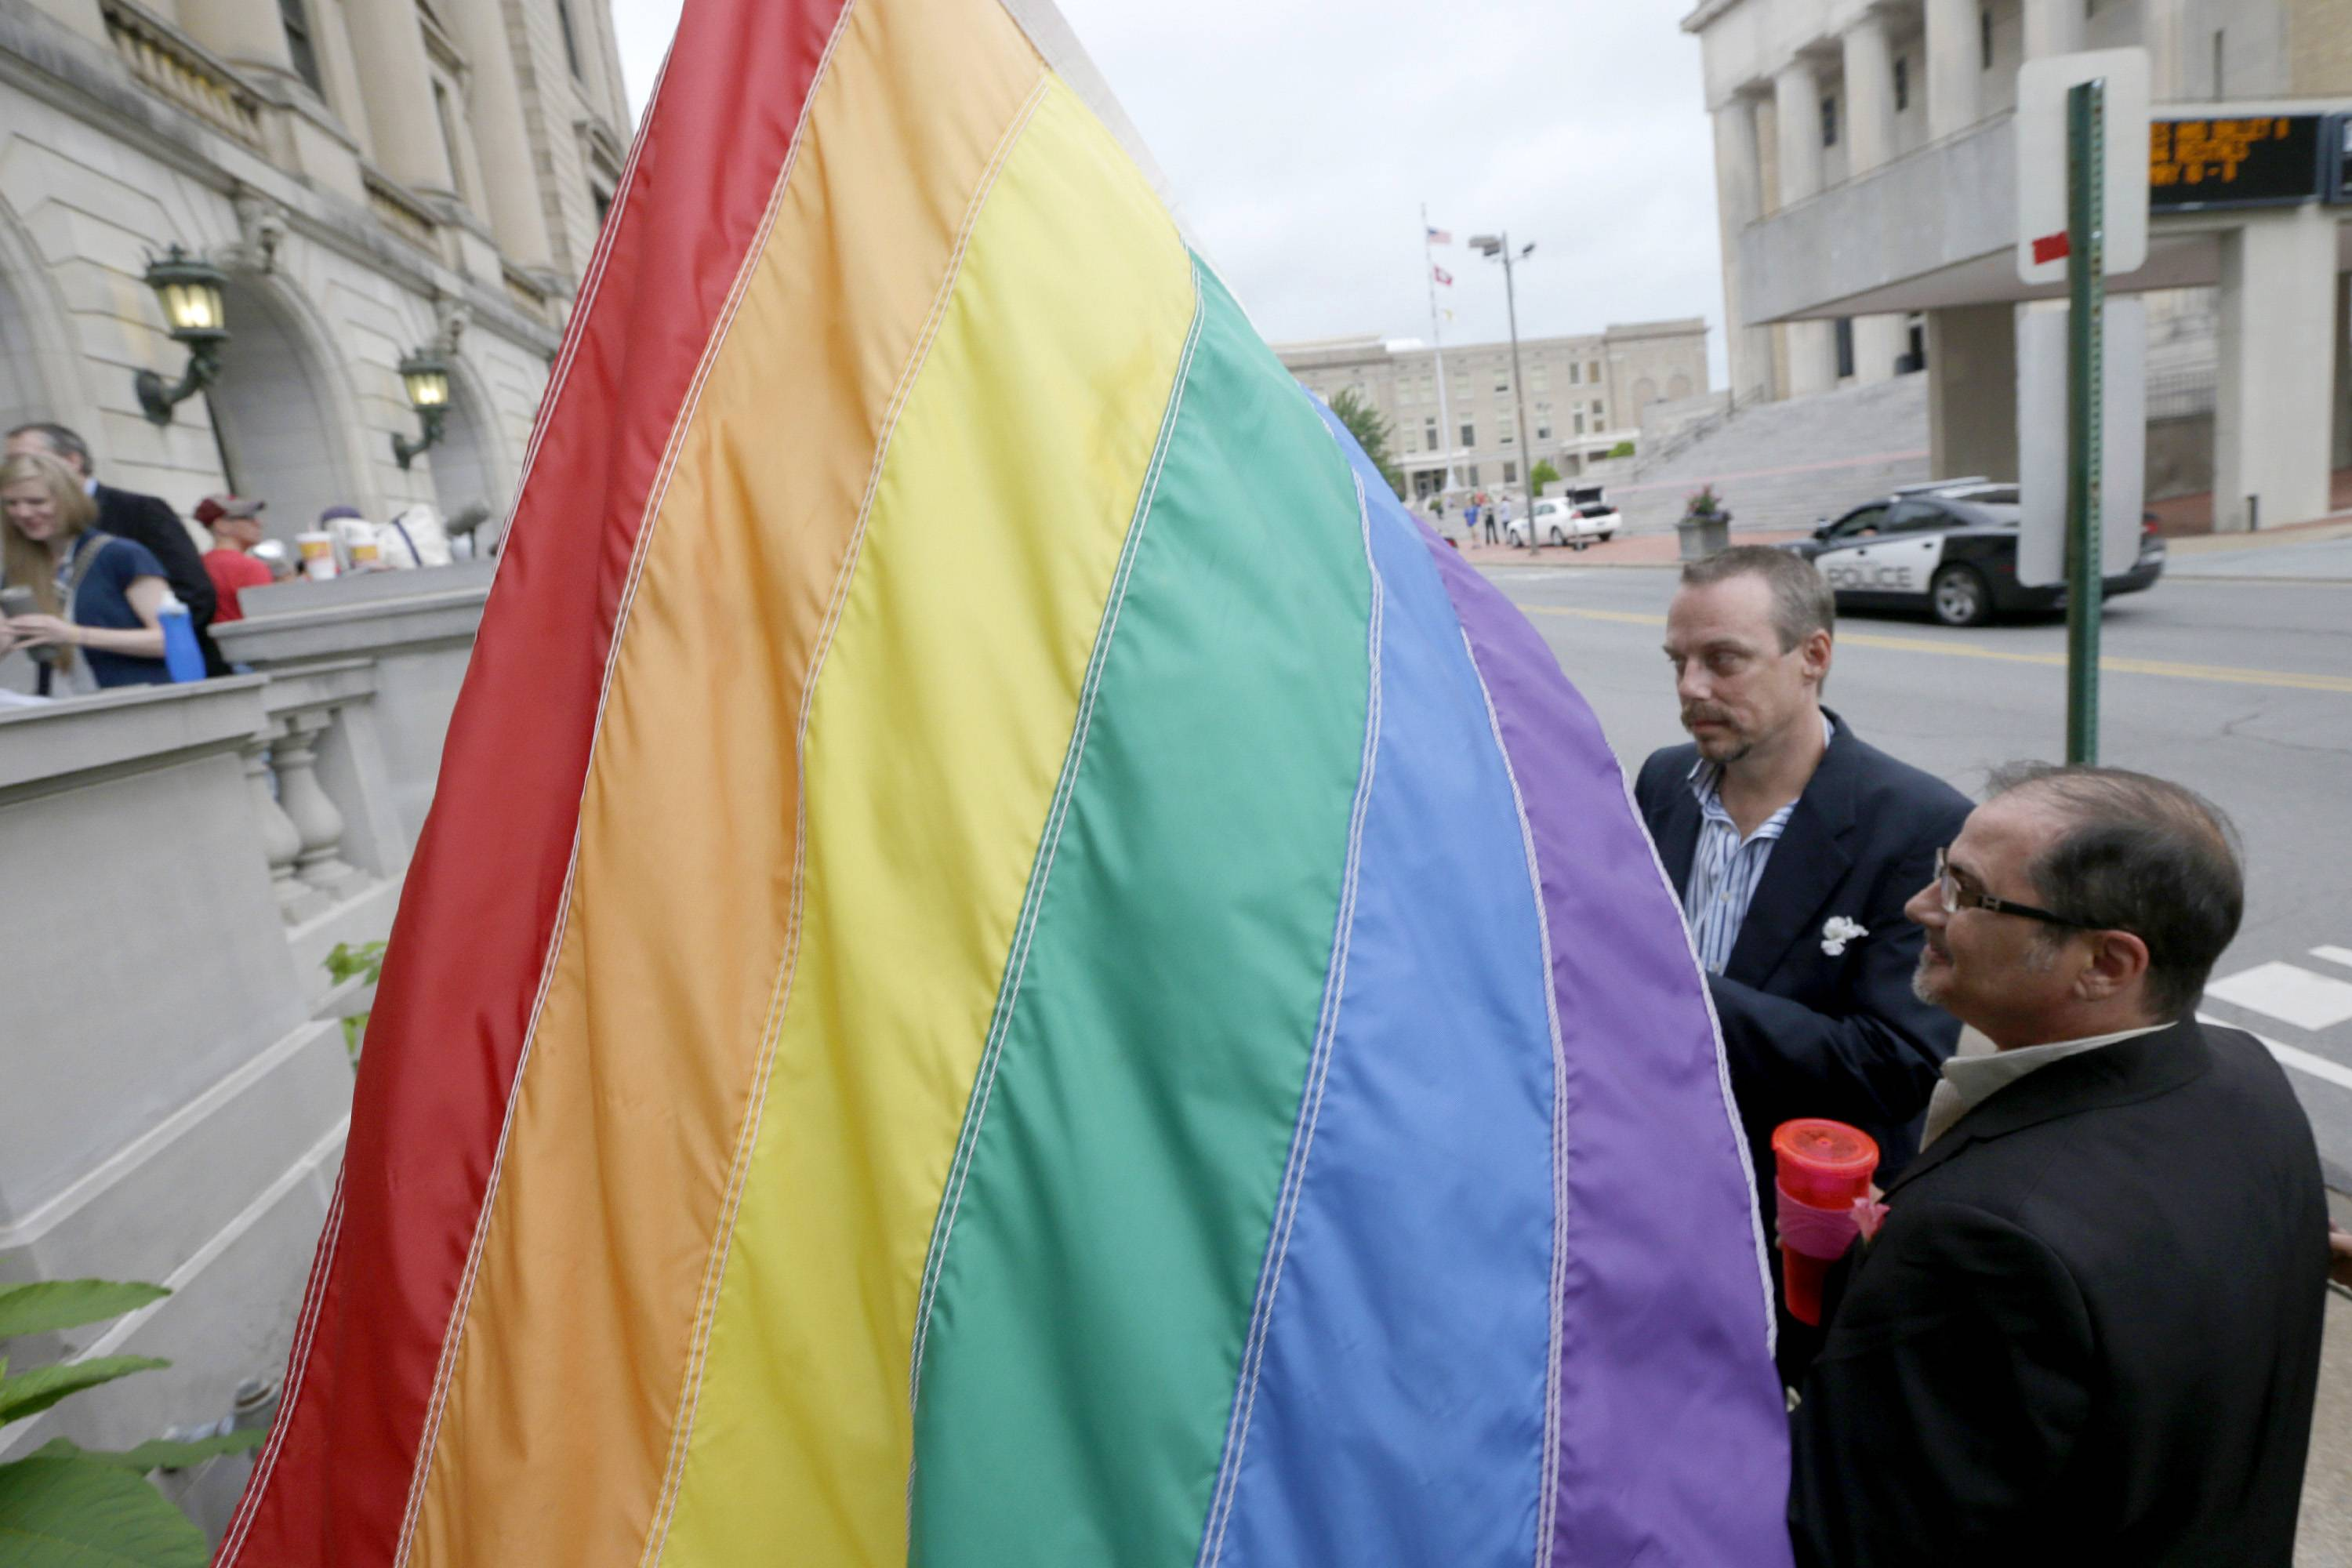 Dozens of Arkansas gay couples, some of whom waited in line overnight, received licenses to marry from county clerks Monday, while lawyers for the state asked its highest court to suspend an order gutting a constitutional amendment that bans same-sex marriage.